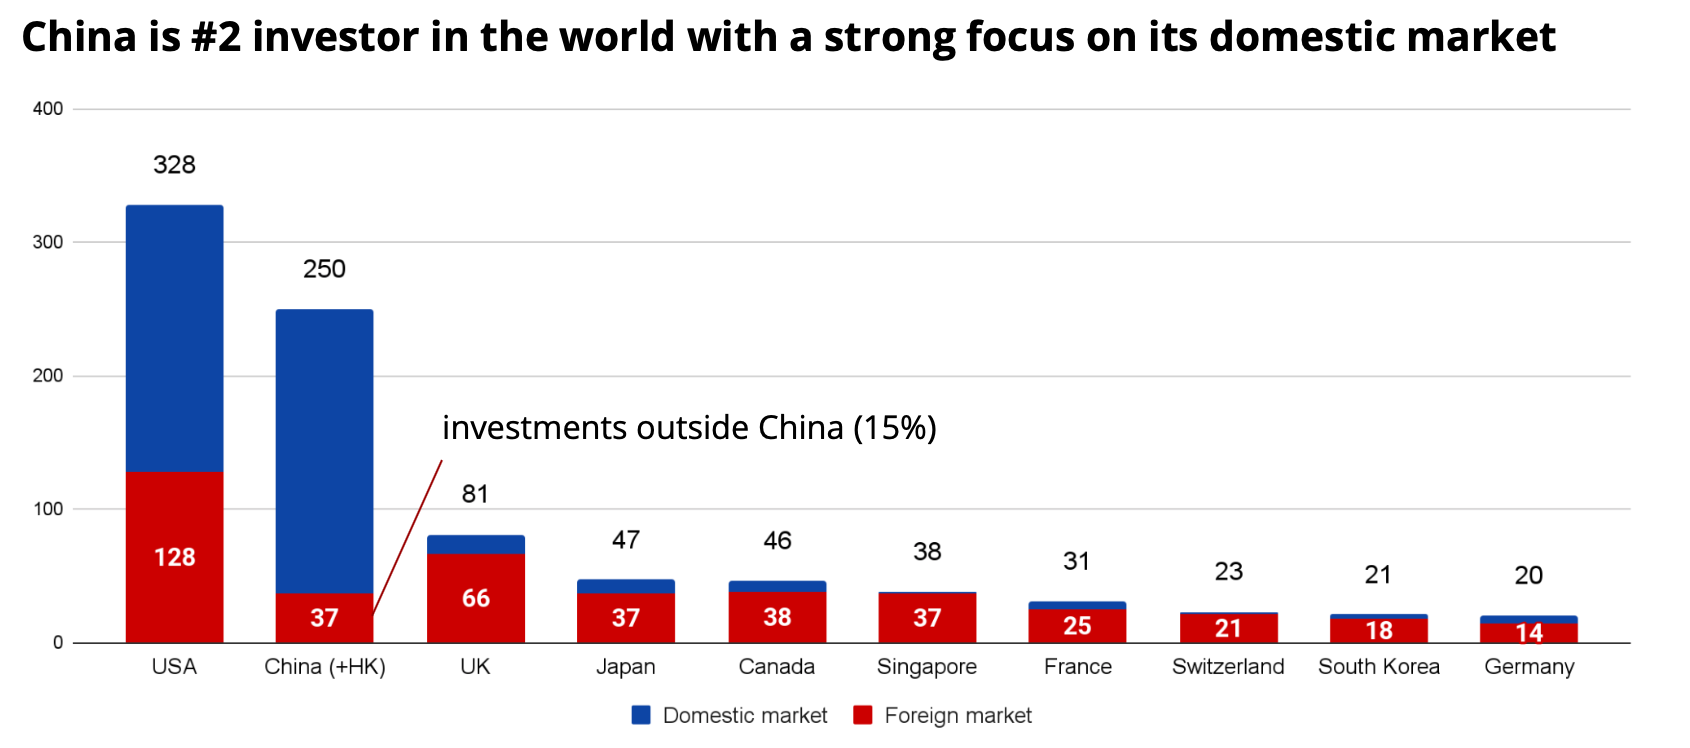 Comparison of investment amount from different countries in 2020, $ bn. Source: Crunchbase, ITjuzi